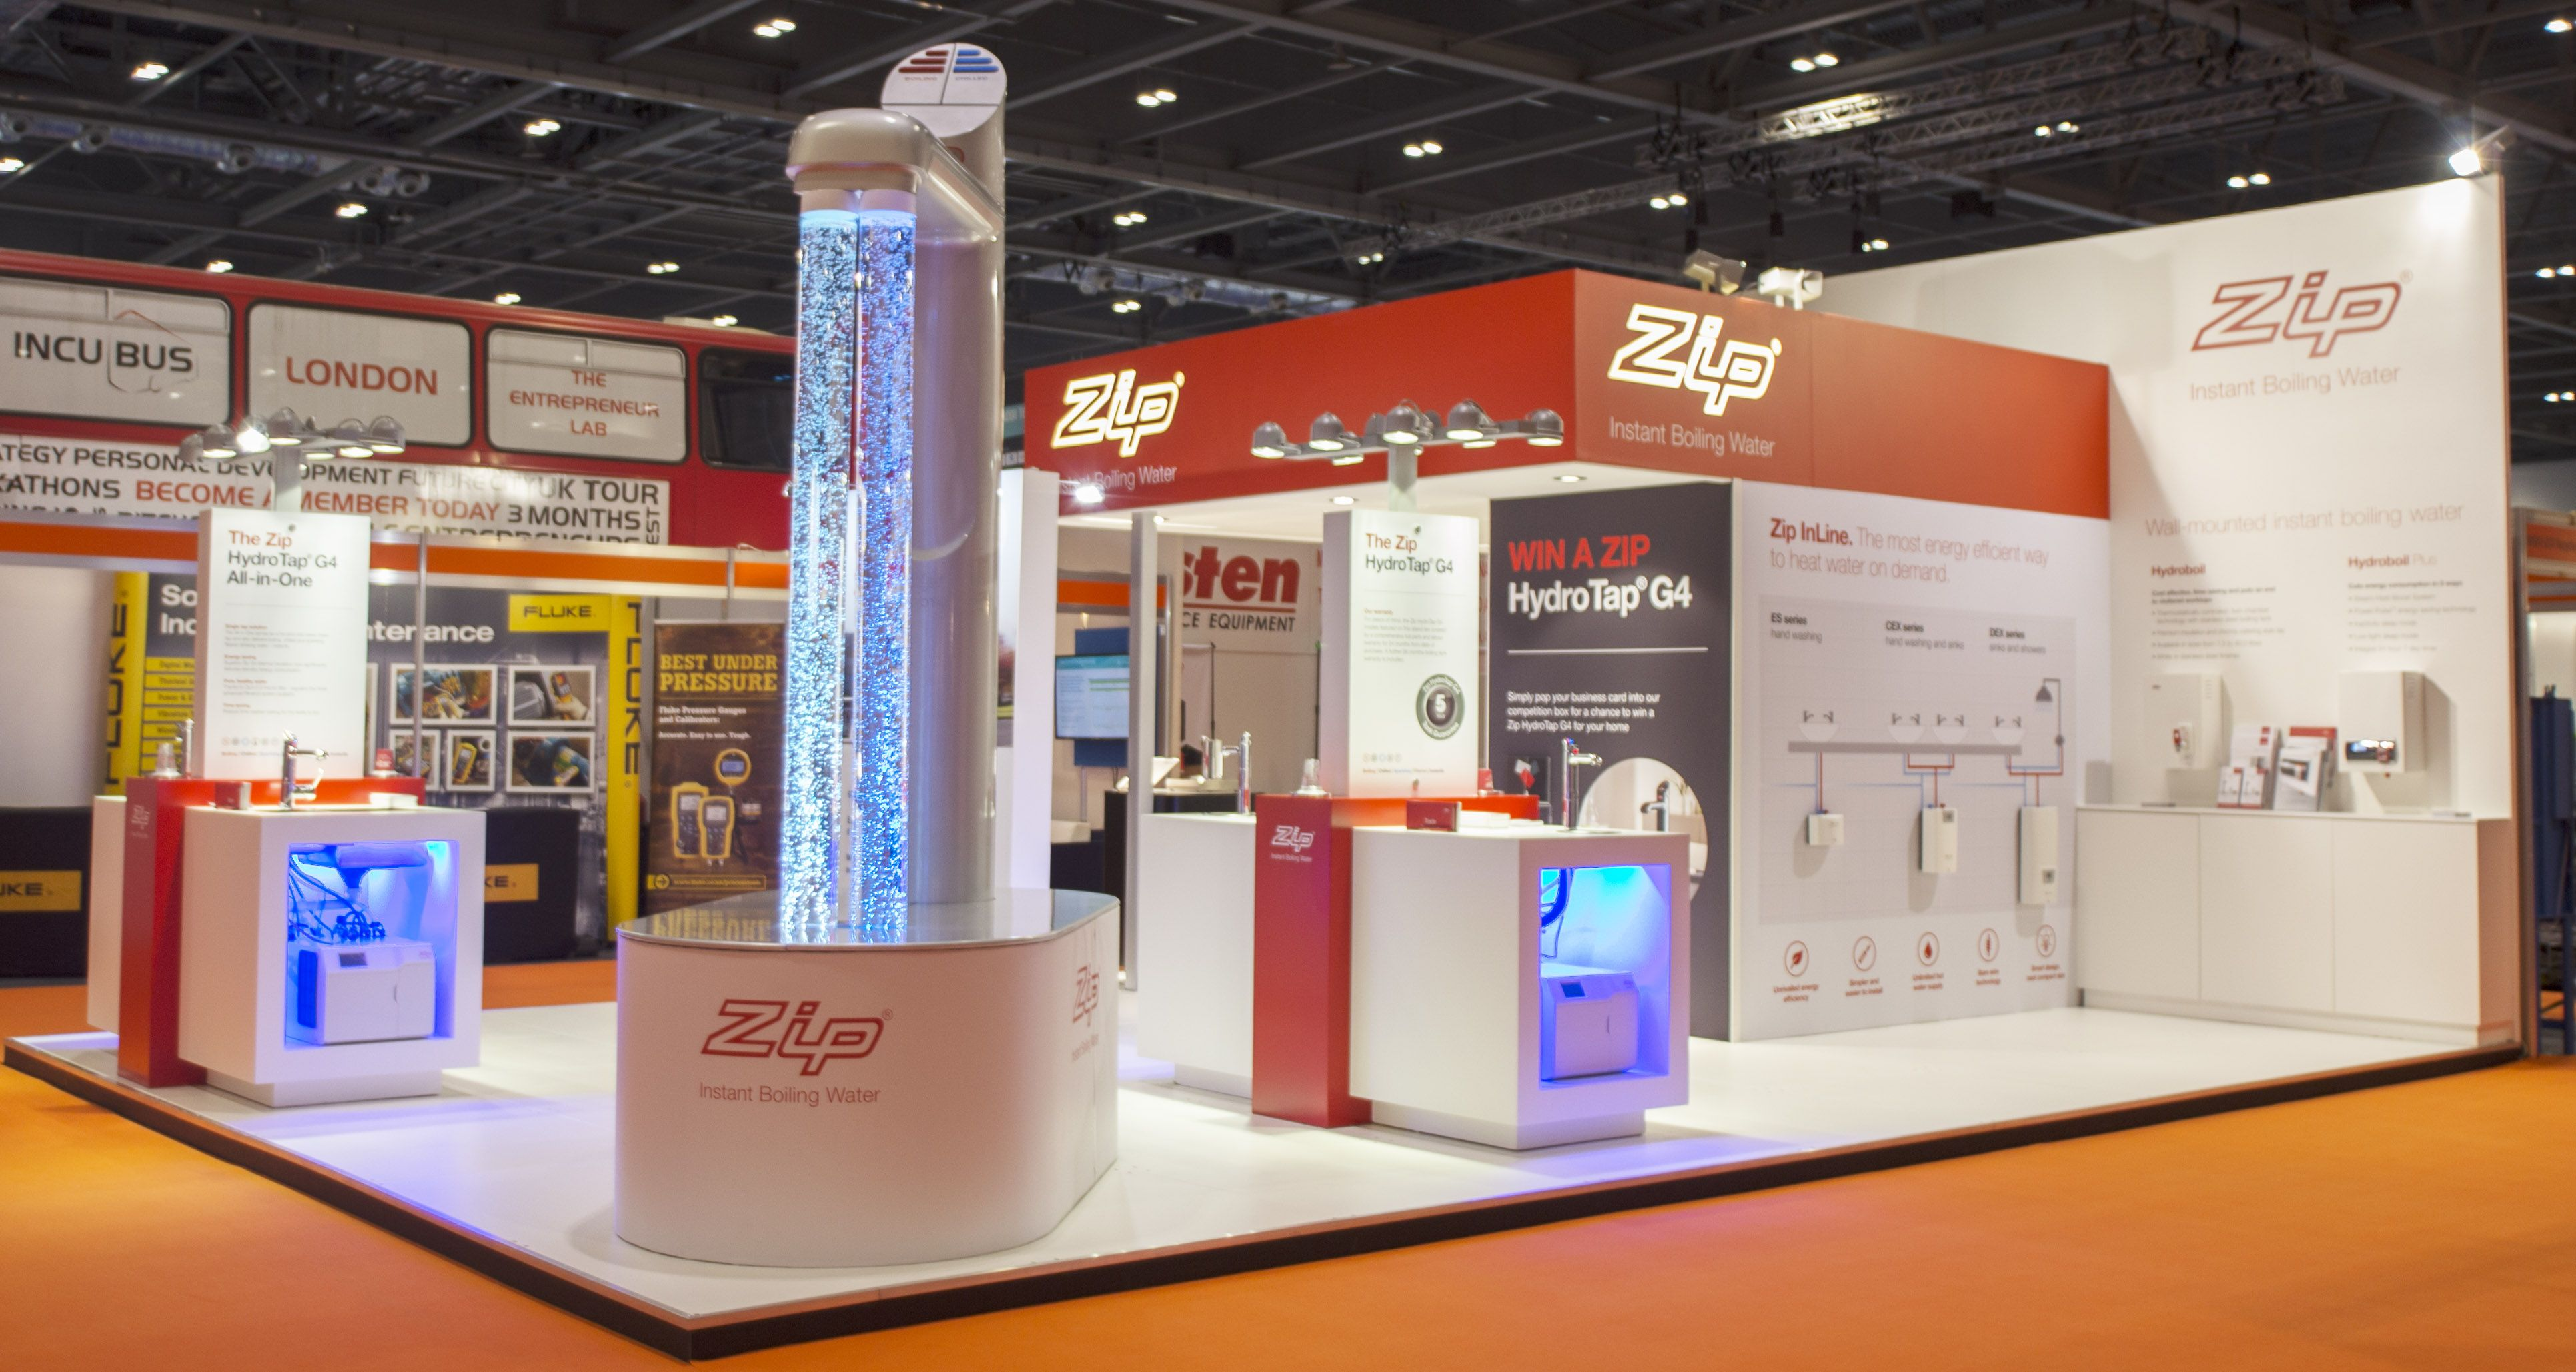 Envisage Exhibition Stand Design And Build Uk : Exhibition design at facilities show: zip heaters #exhibition #stand